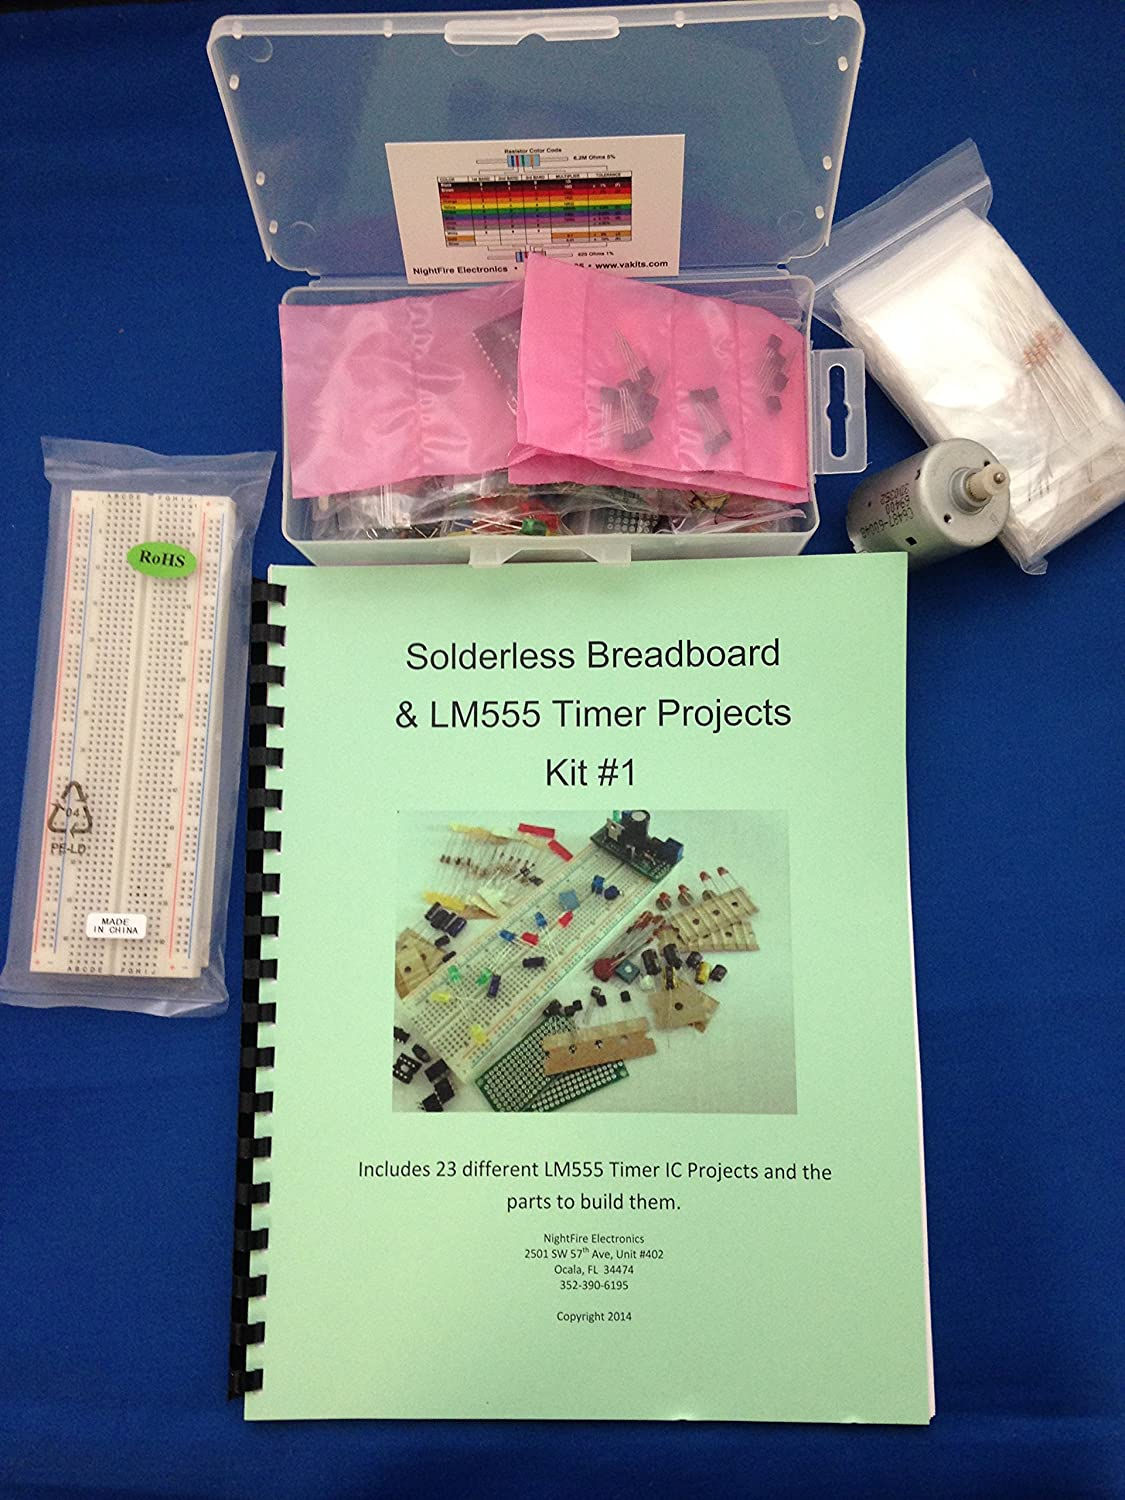 Lm555 Timer Ic Projects Kit 1 With Solderless From Snap Circuits Micro Courtesy Elenco Electronics Inc Breadboard Toys Games